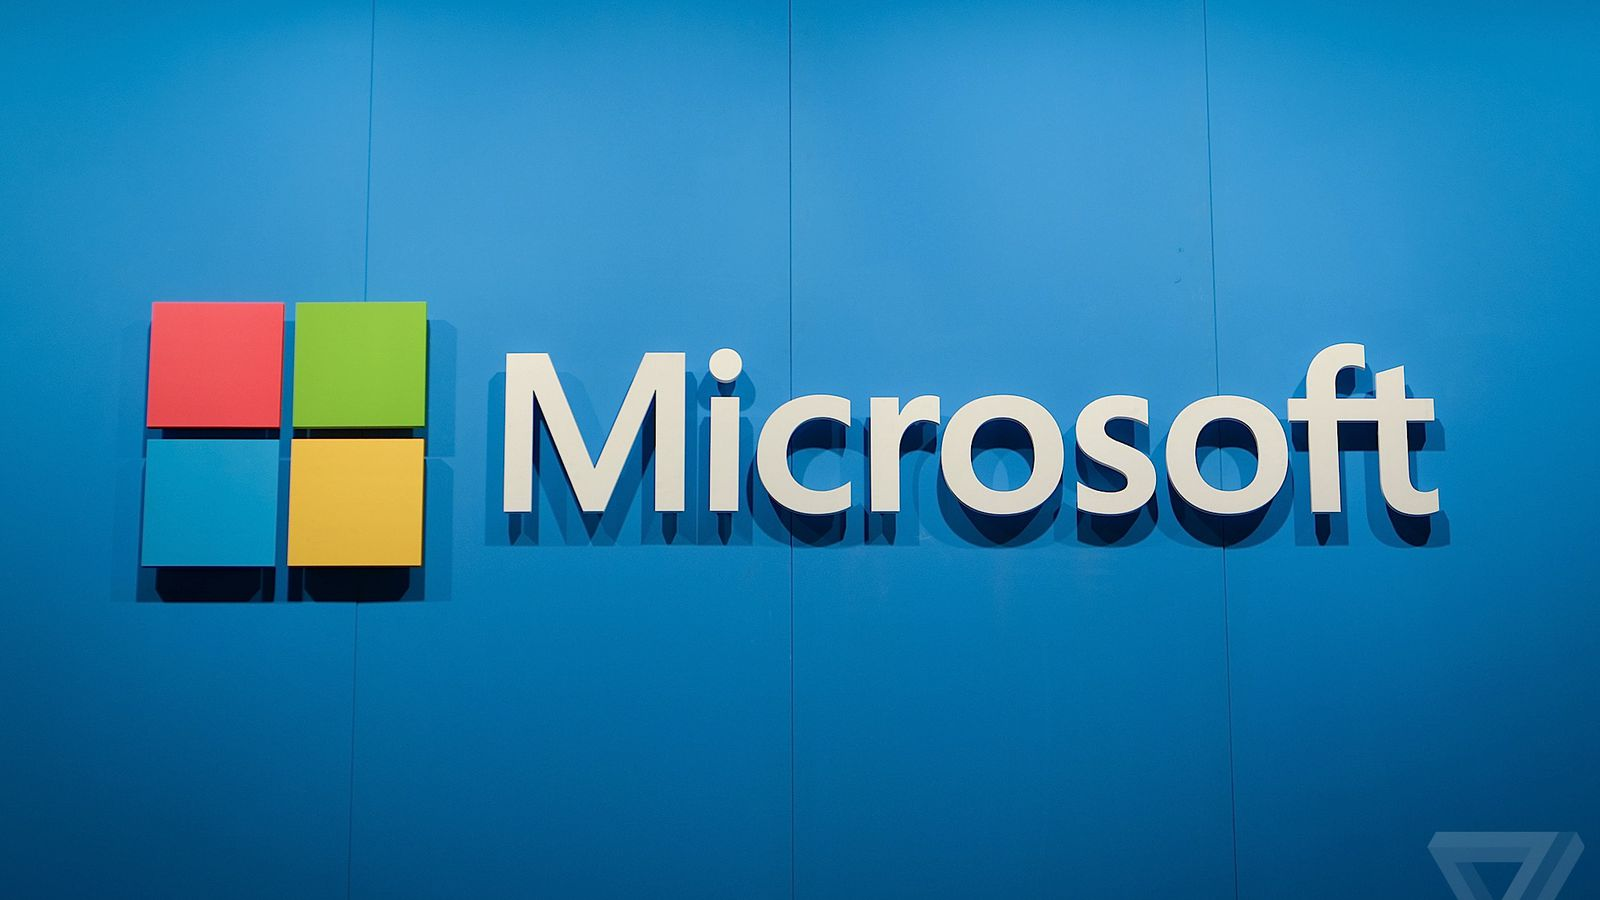 Microsoft announces thousands of job cuts as it refocuses on the cloud – The Verge